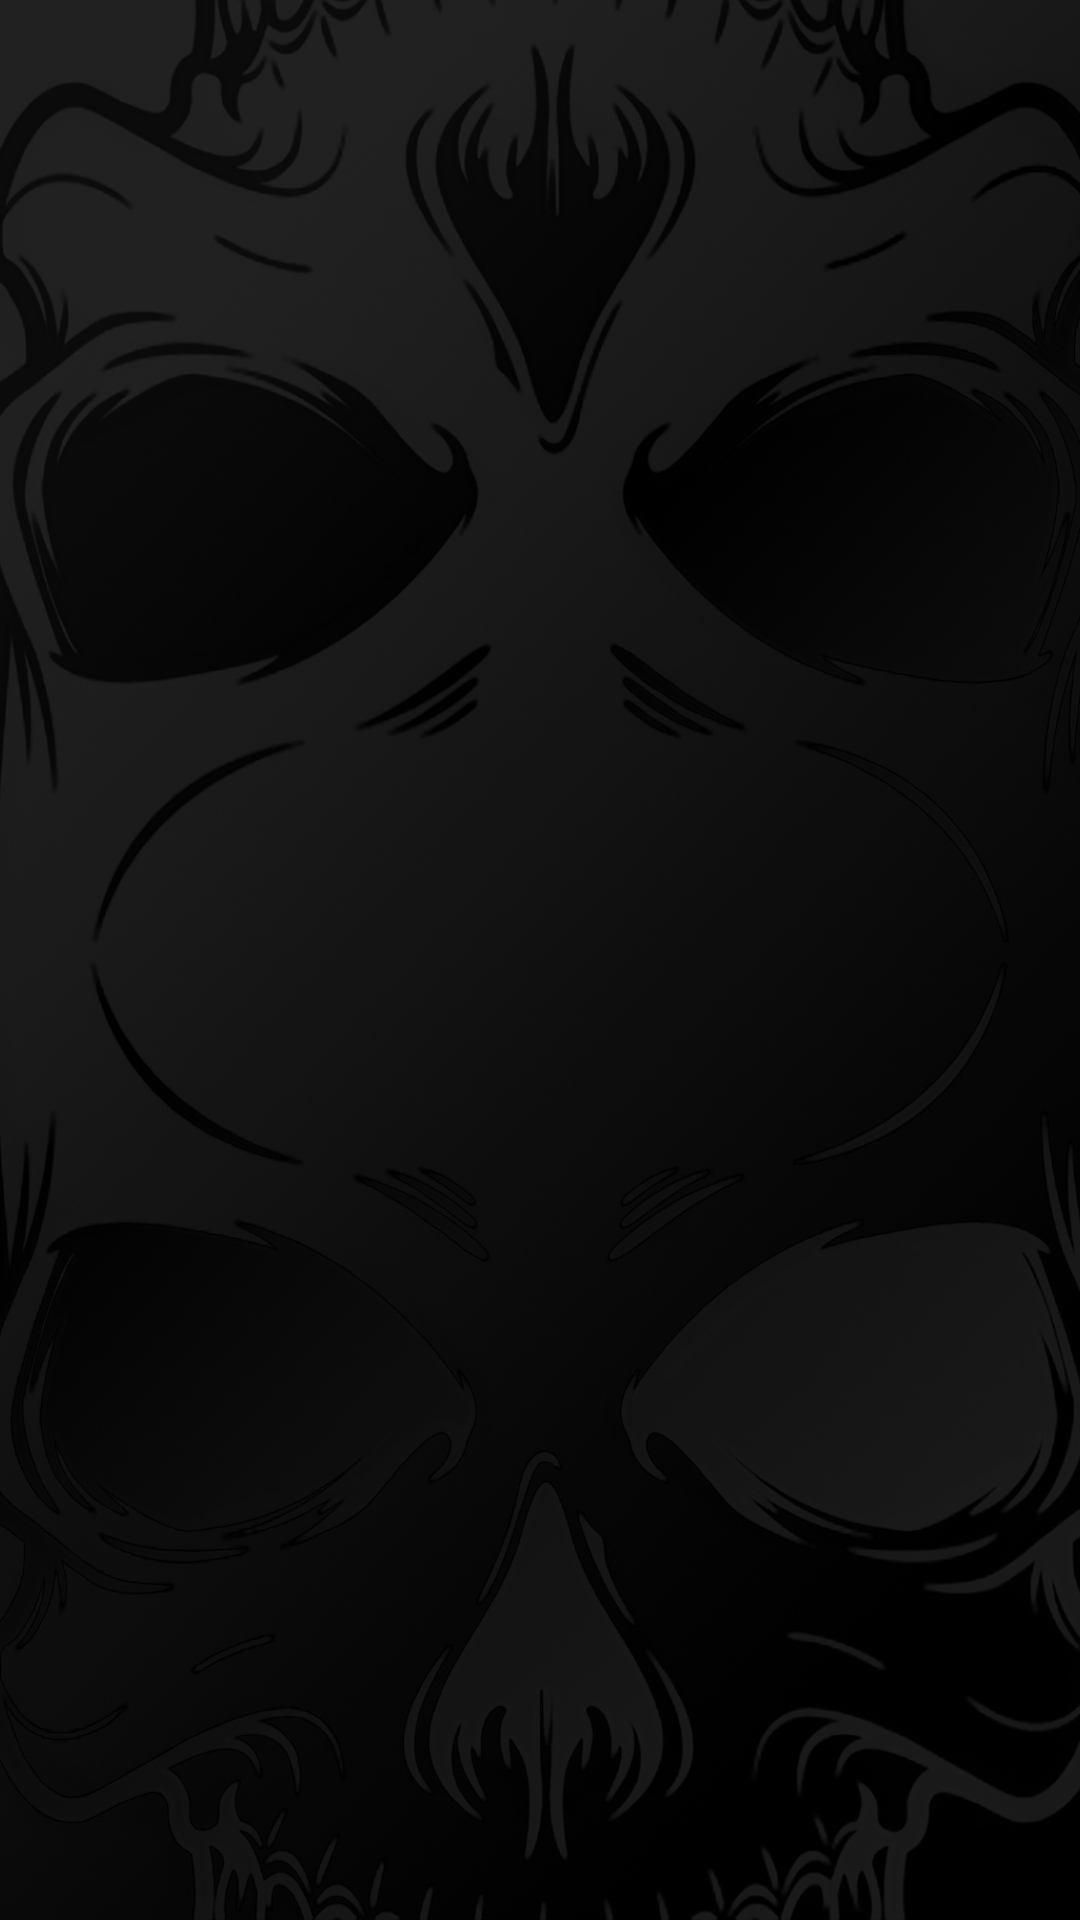 Stealth Skull Cool iPhone Background 1080x1920